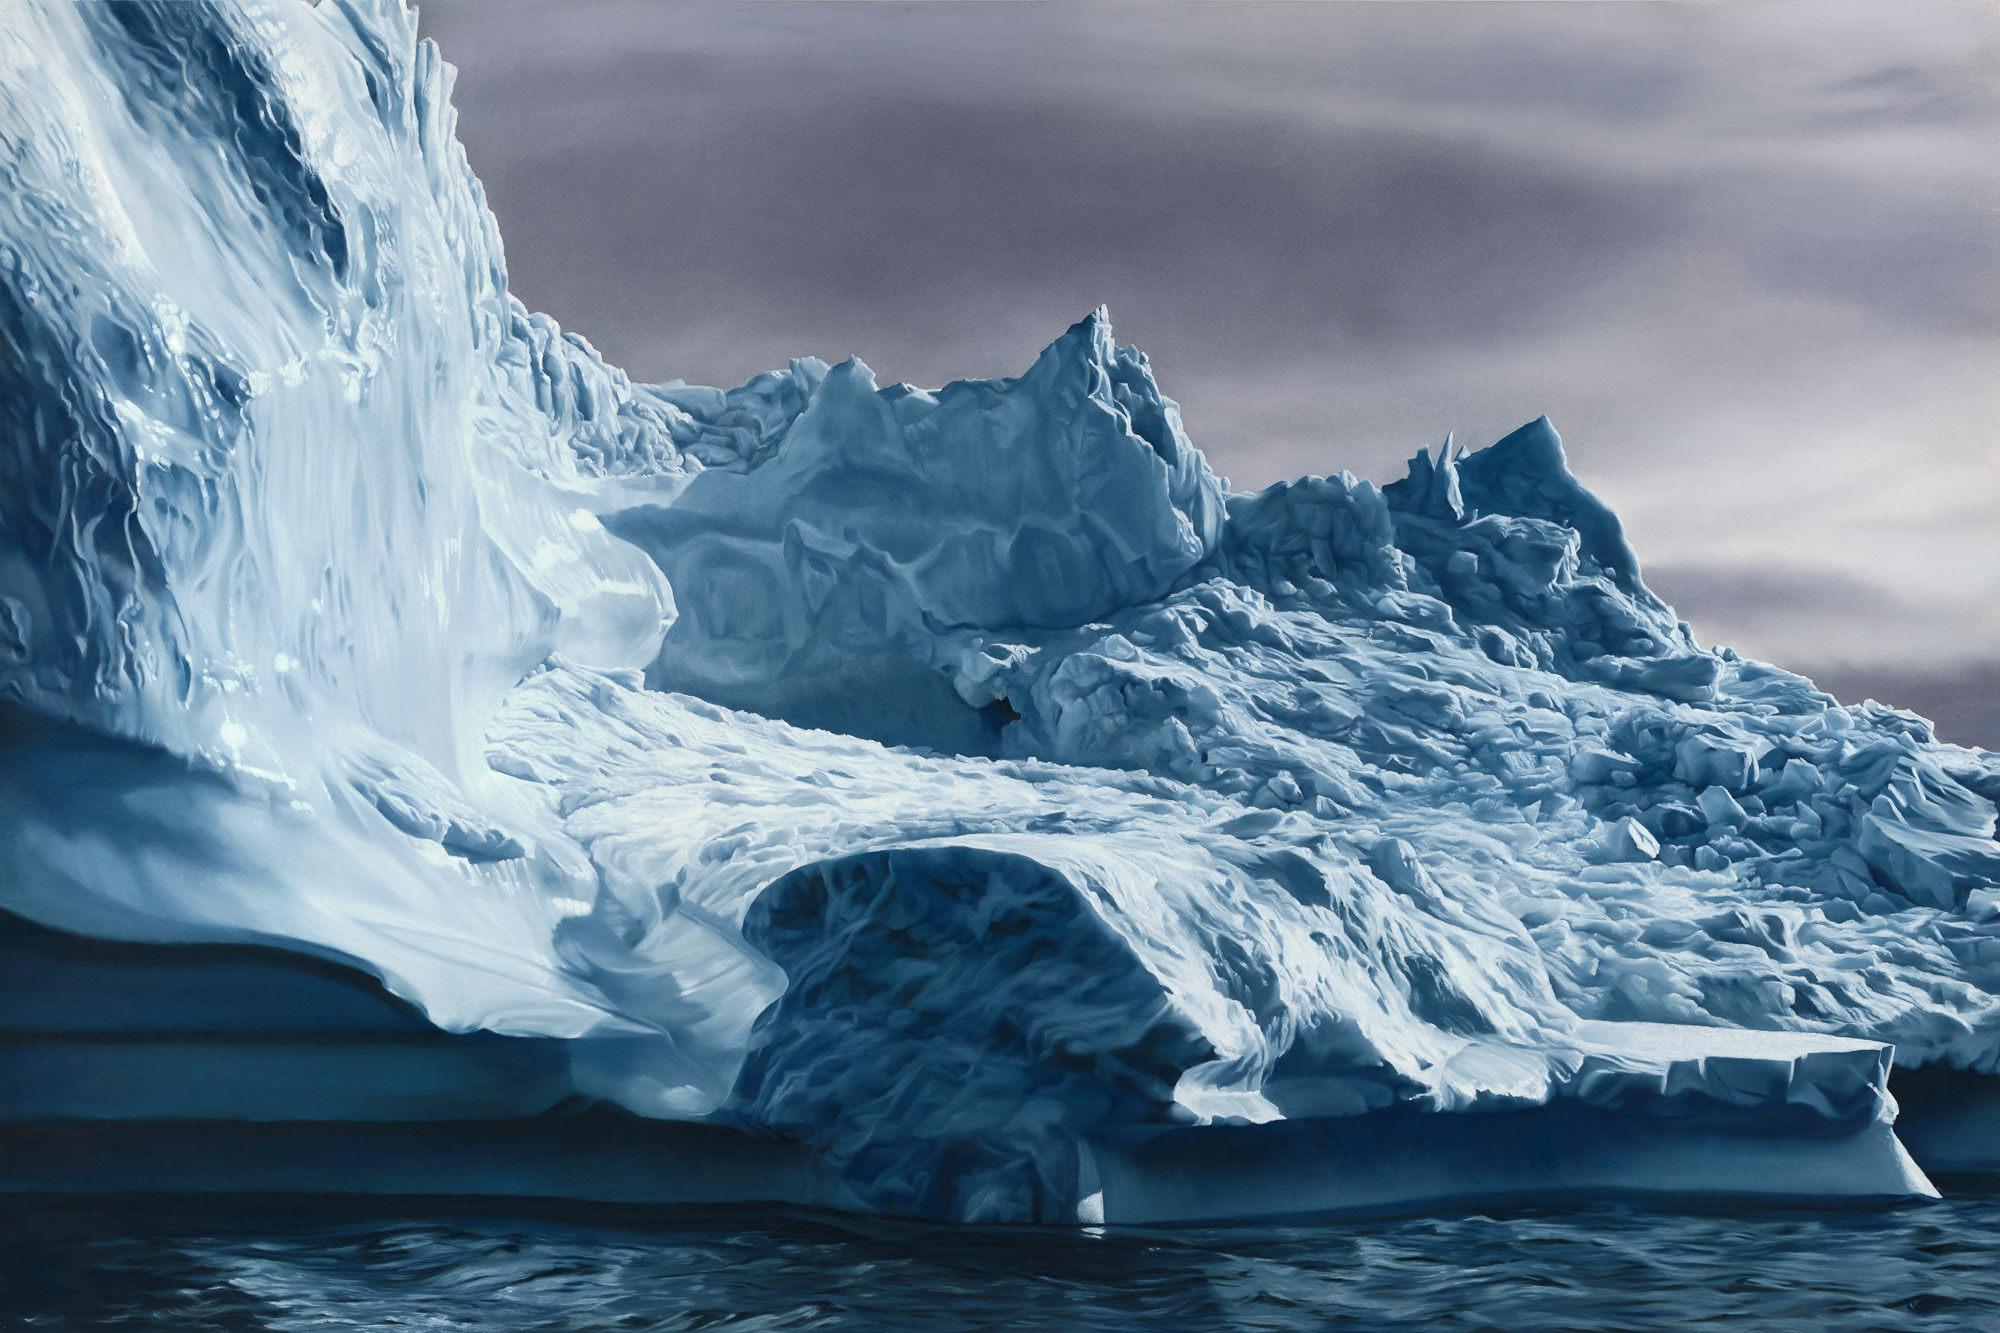 GREENLAND NO.63, 50 X 75 INCHES, SOFT PASTEL ON PAPER, 2013